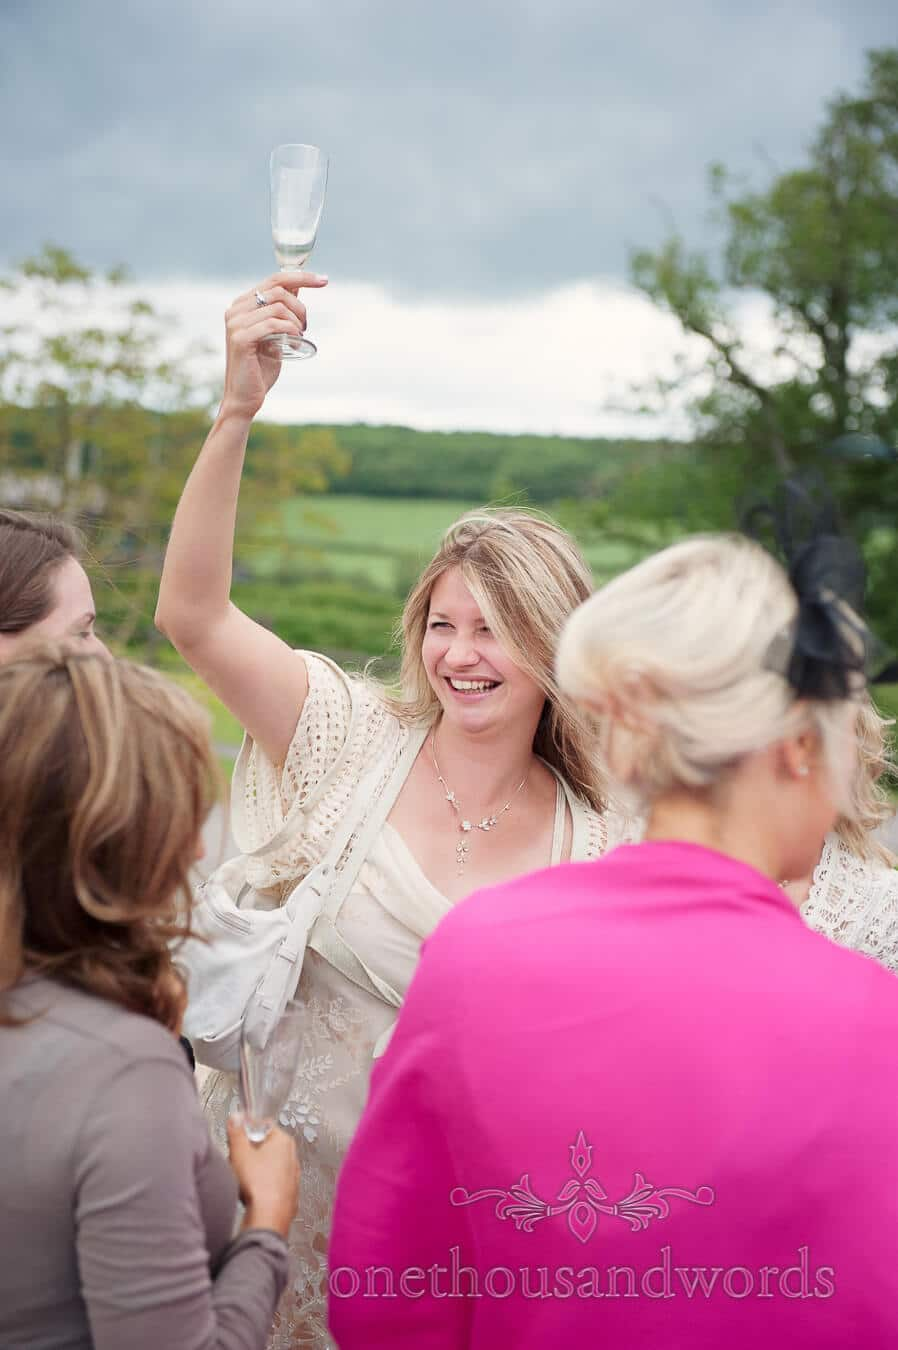 wedding guest celebrates with champagne glass